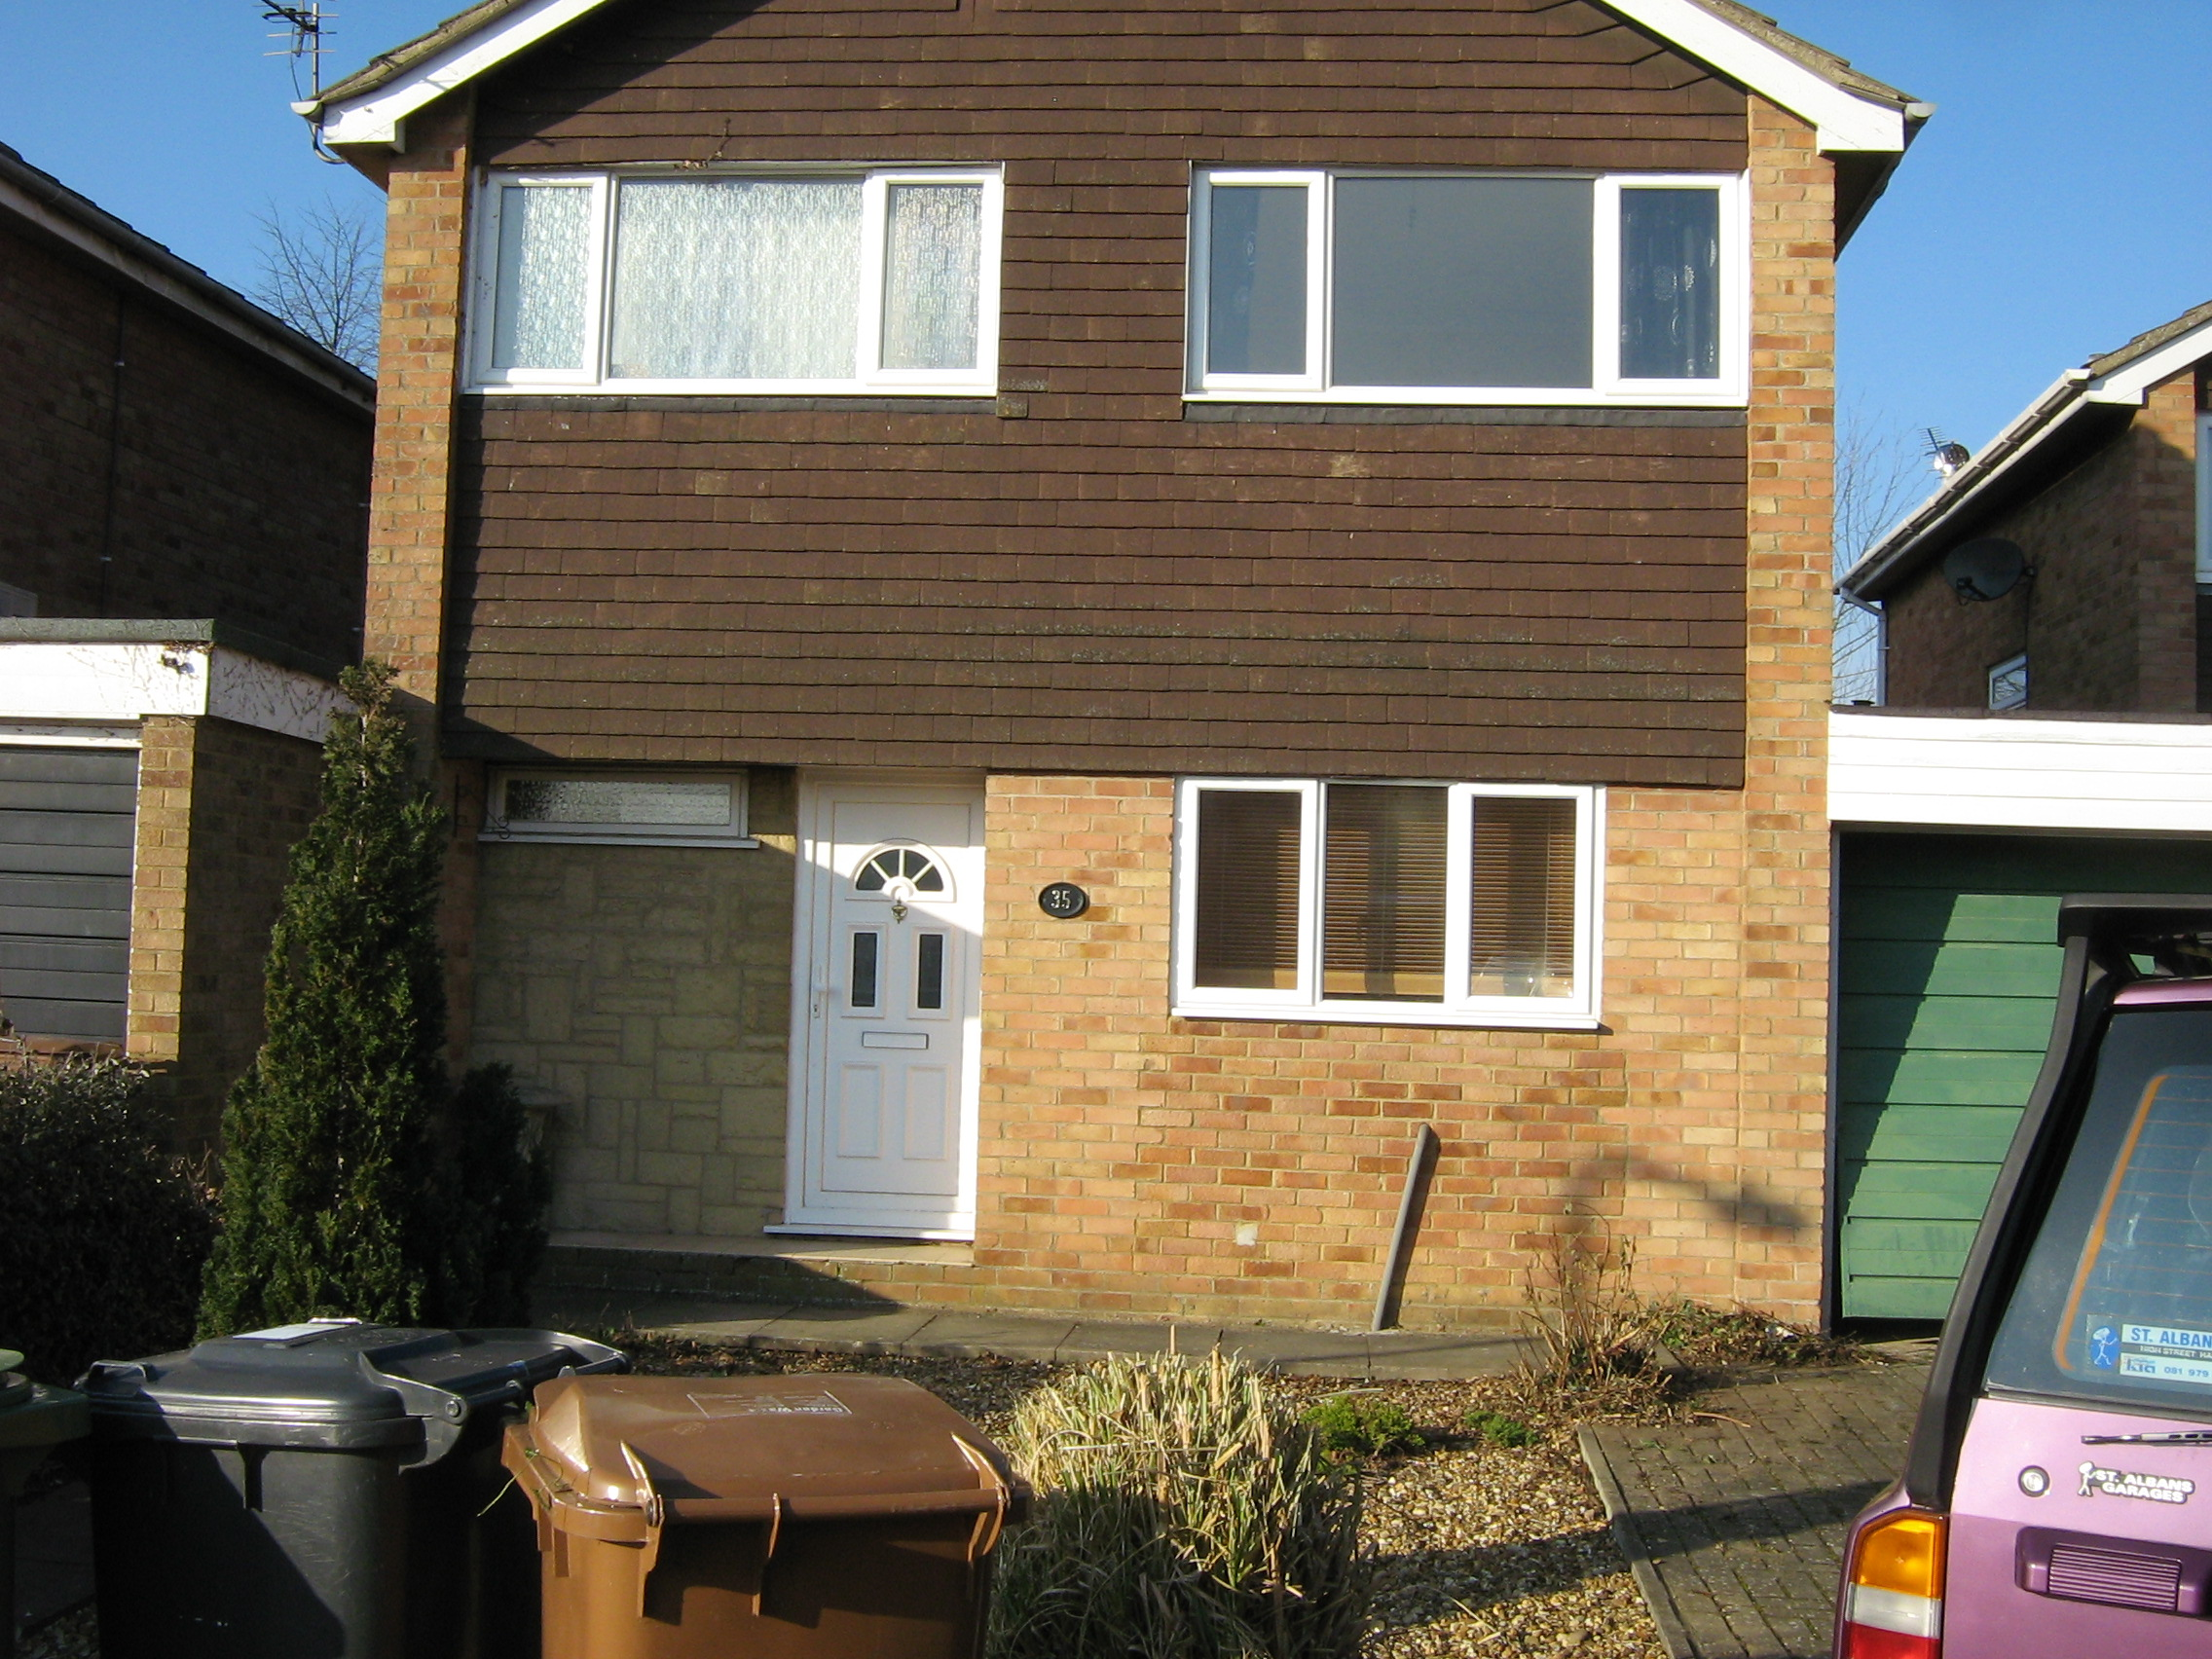 3 Bedroom Unfurnished Detached To Rent On Sywell Avenue, Wellingborough,  NN8 By Private Landlord